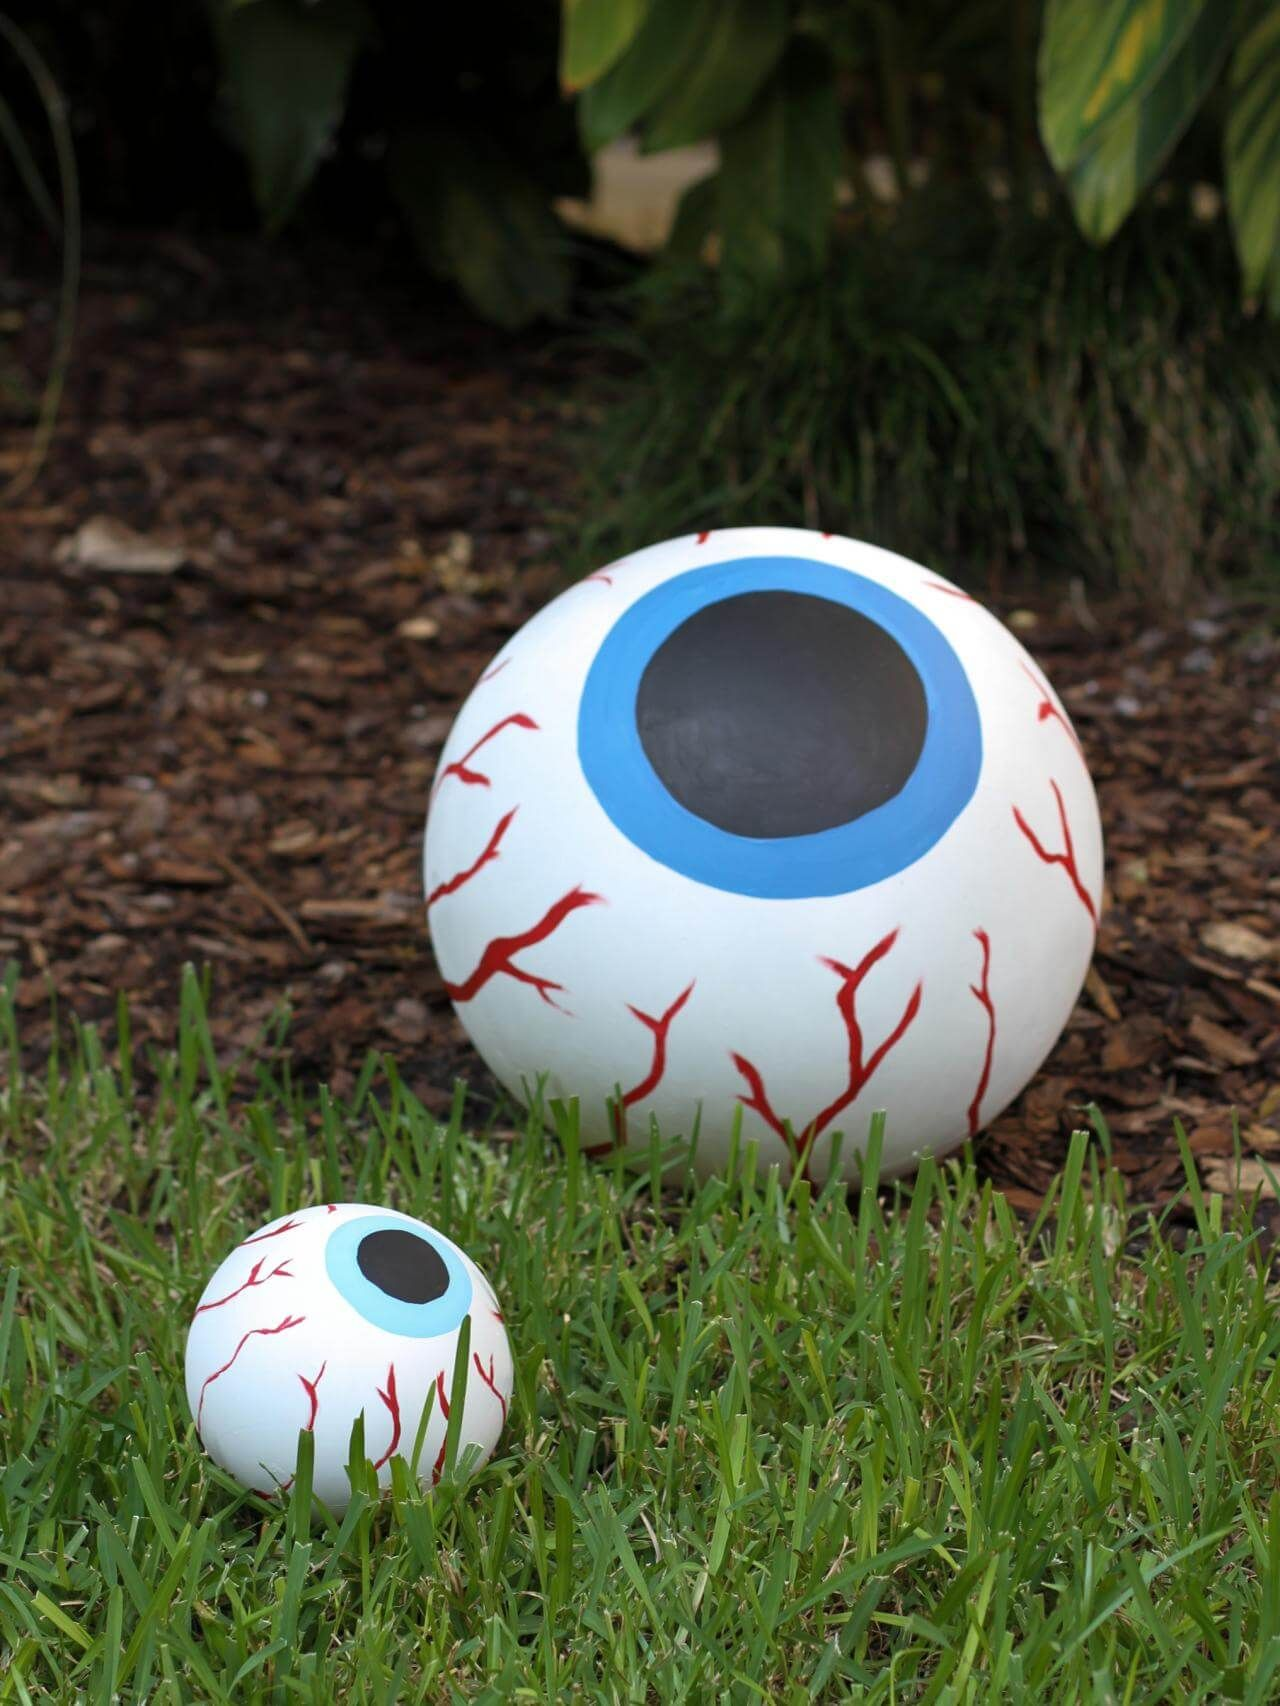 Scary Eyeball Halloween Decor by DIY Network and other easy - diy outdoor halloween decorations